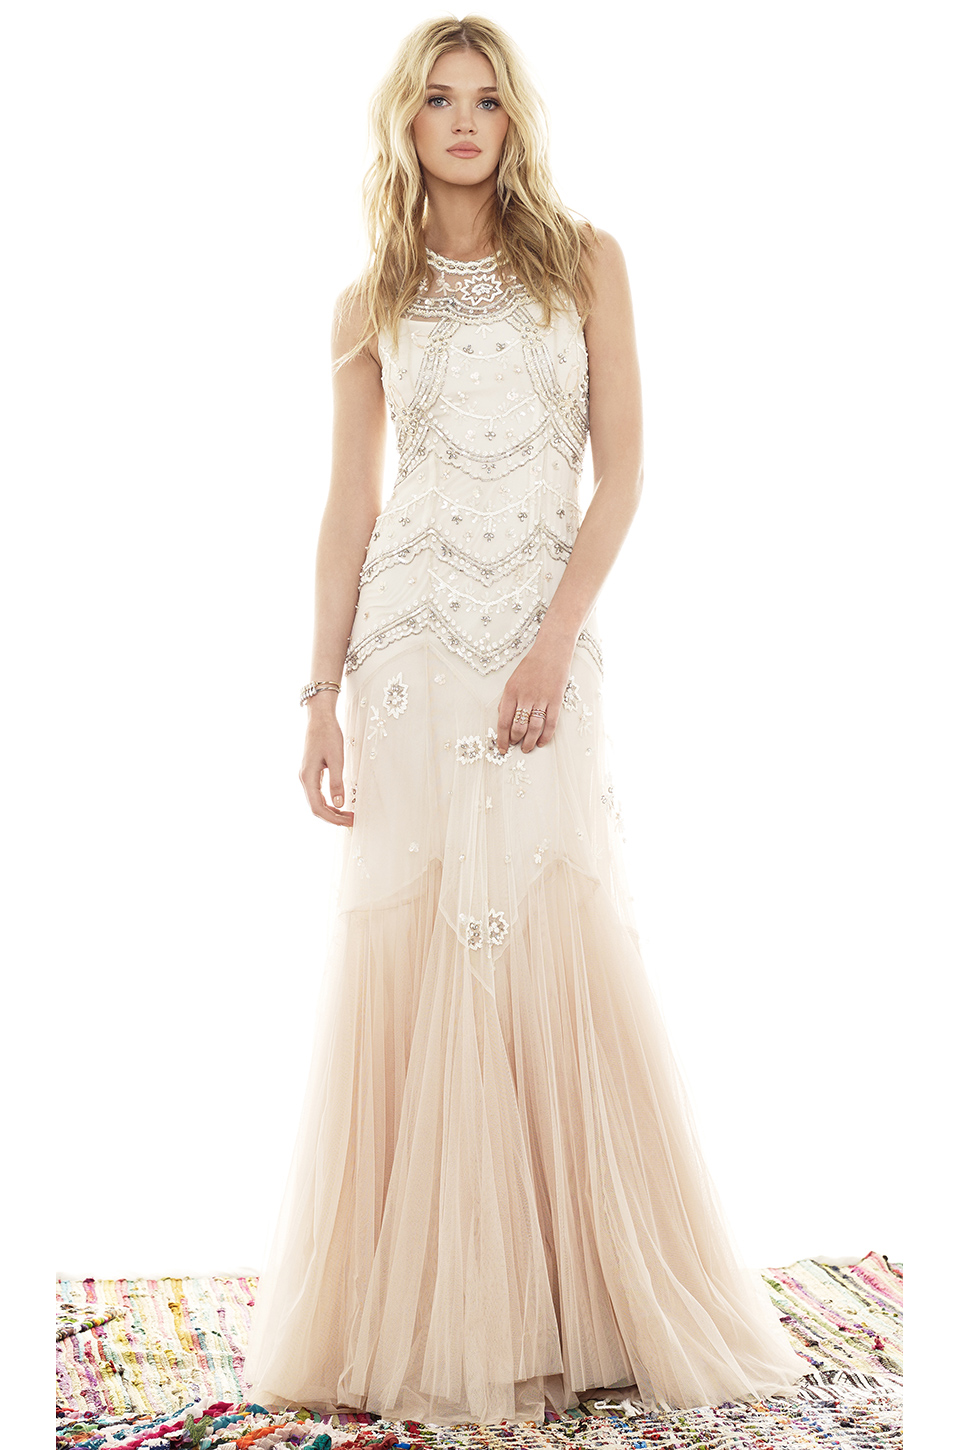 REVOLVE Clothing 2015 Wedding Gown Collection 5